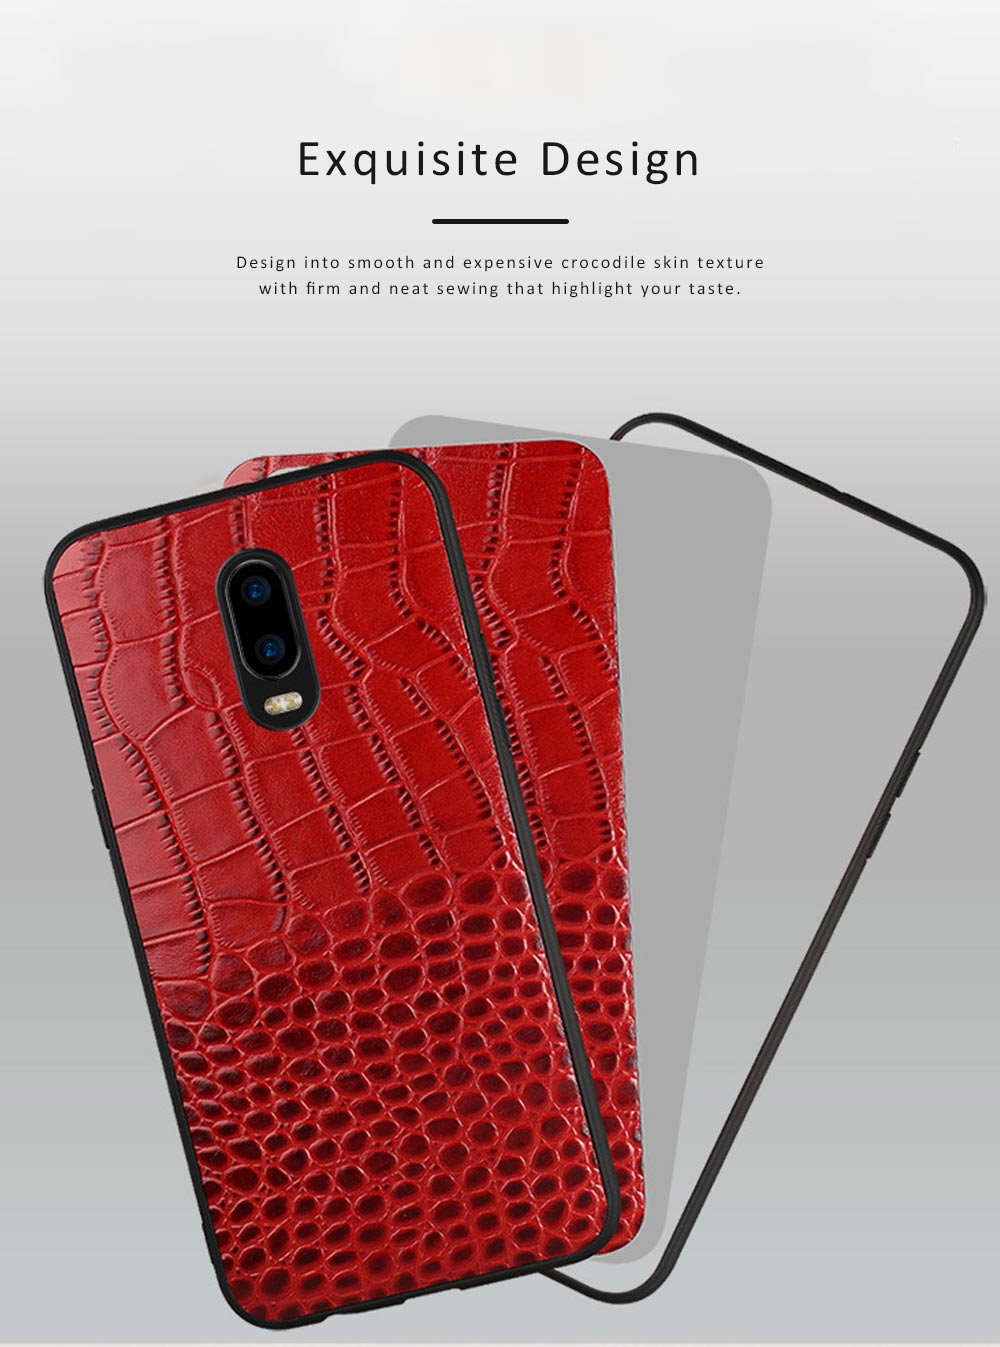 Phone Case Retro Genuine Leather 3D Alligator Skin Texture Case Fashion Phone Accessories for OPPOR Series 3